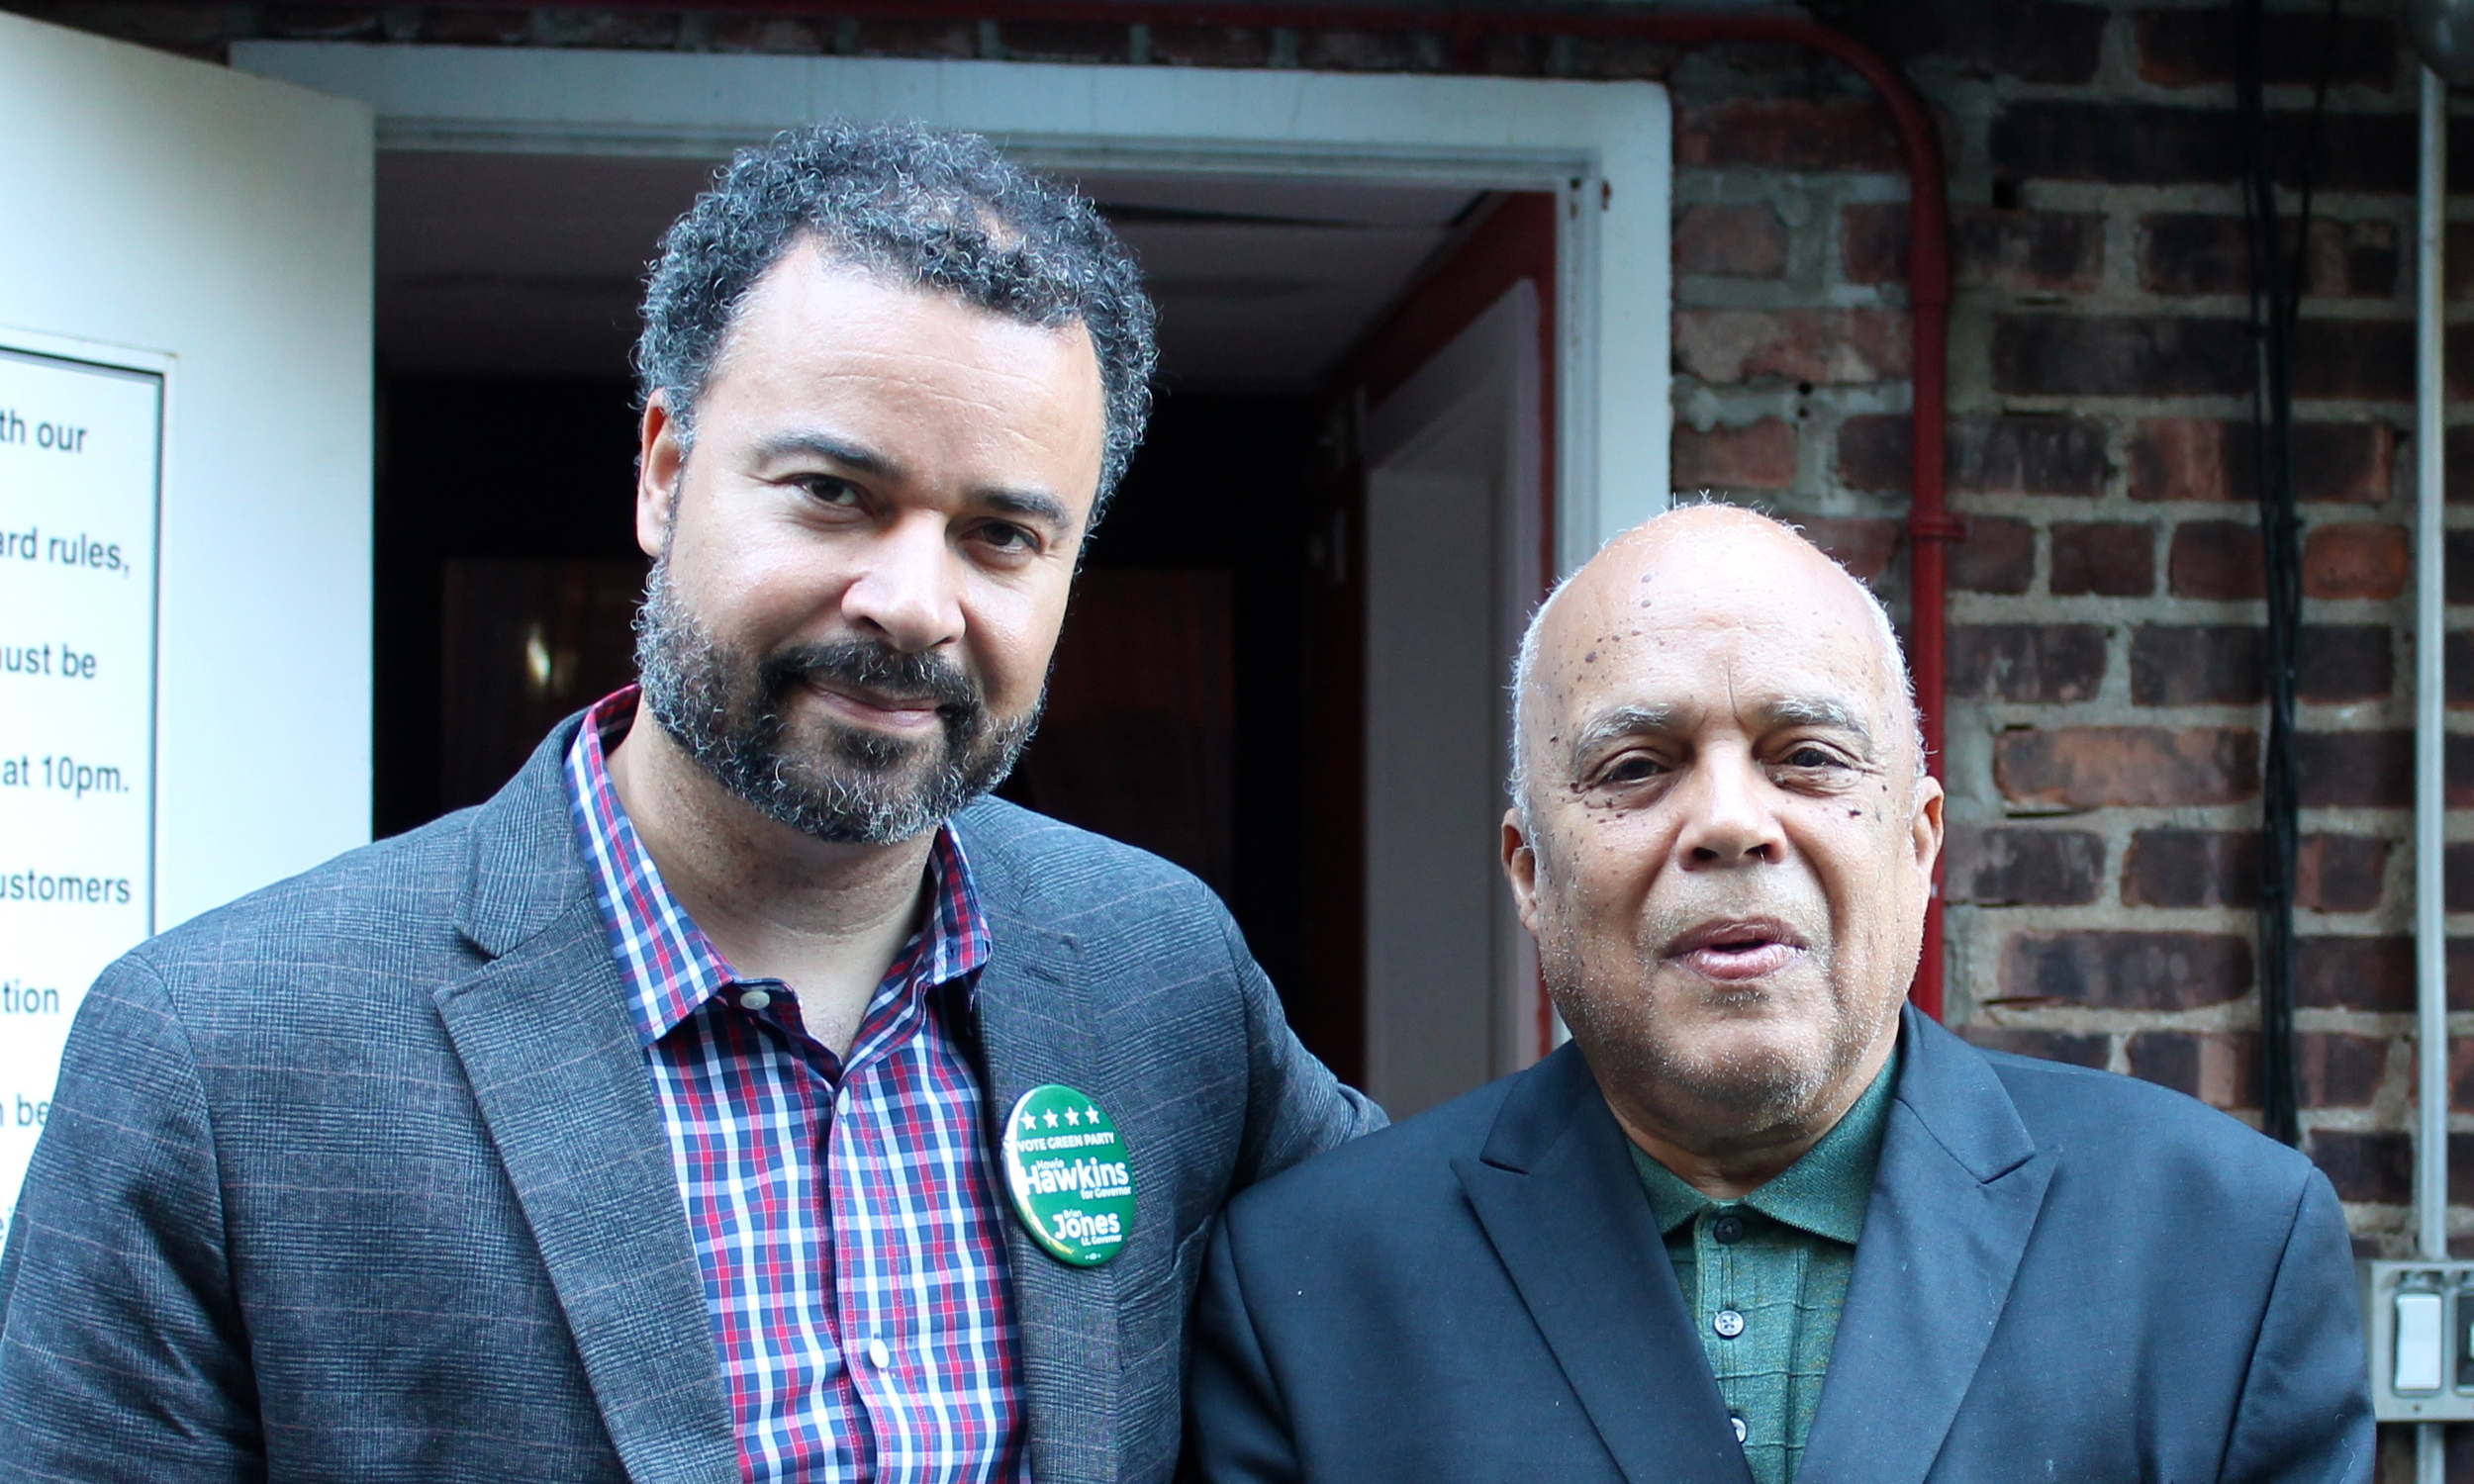 Green Party candidates  Brian Jones , left, and  Ramon Jimenez , right. Mr. Jones is campaigning for Lieutenant Governor, and Mr. Jimenez is campaigning for Attorney General. Both men appeared at a meet and greet with voters at Flynn's Garden Inn in Woodside, Queens. Source : Louis Flores